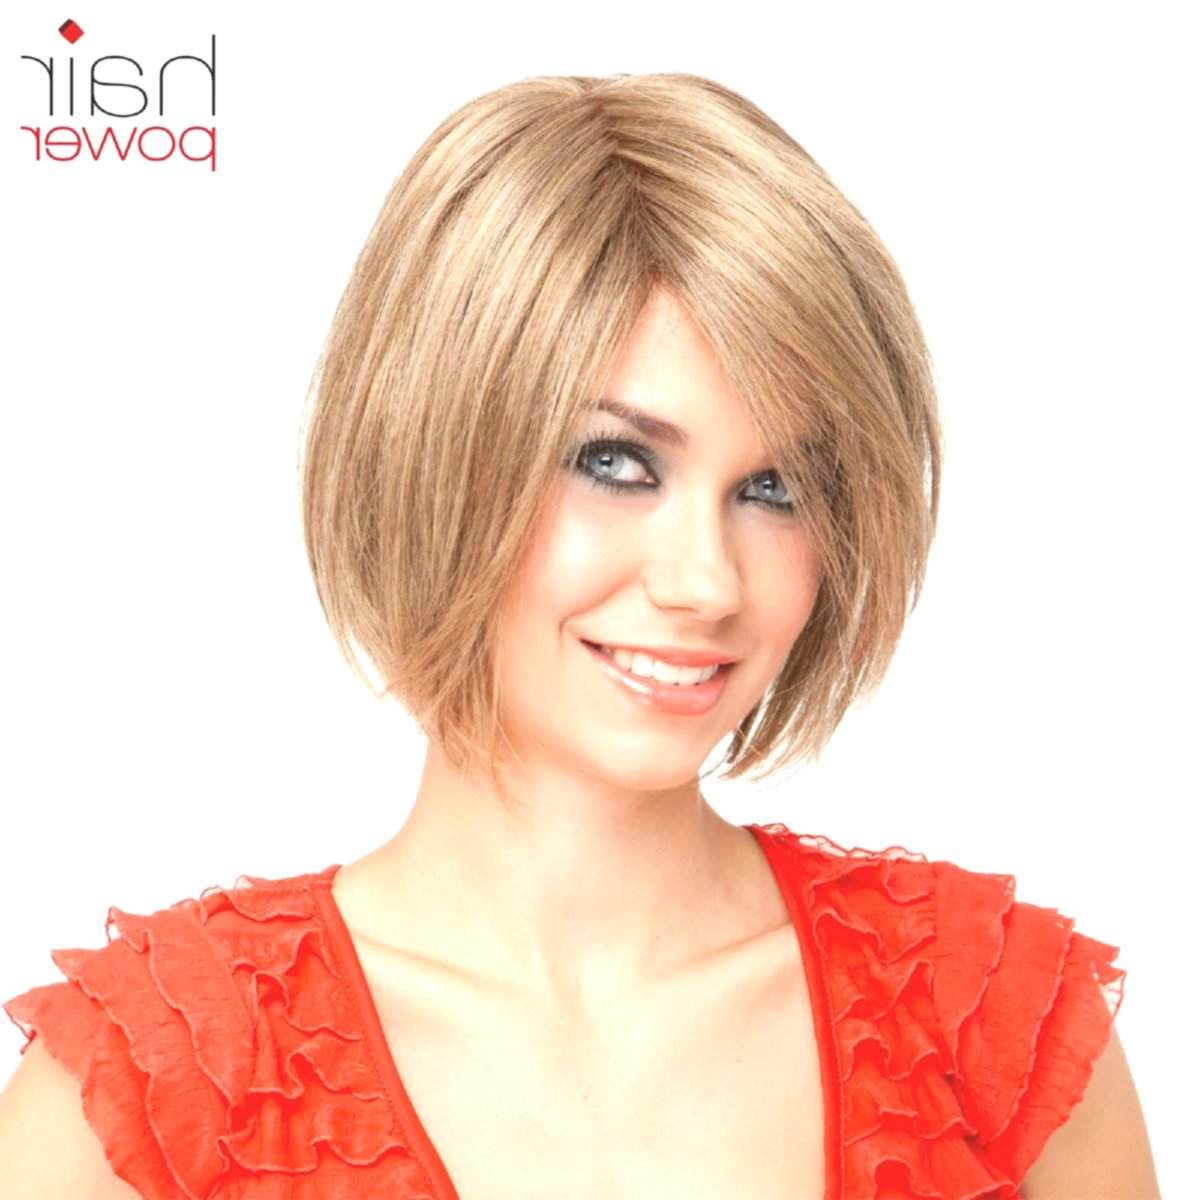 wonderfully stunning chin-length hairstyles photo picture-Best Kinnlange hairstyles layout